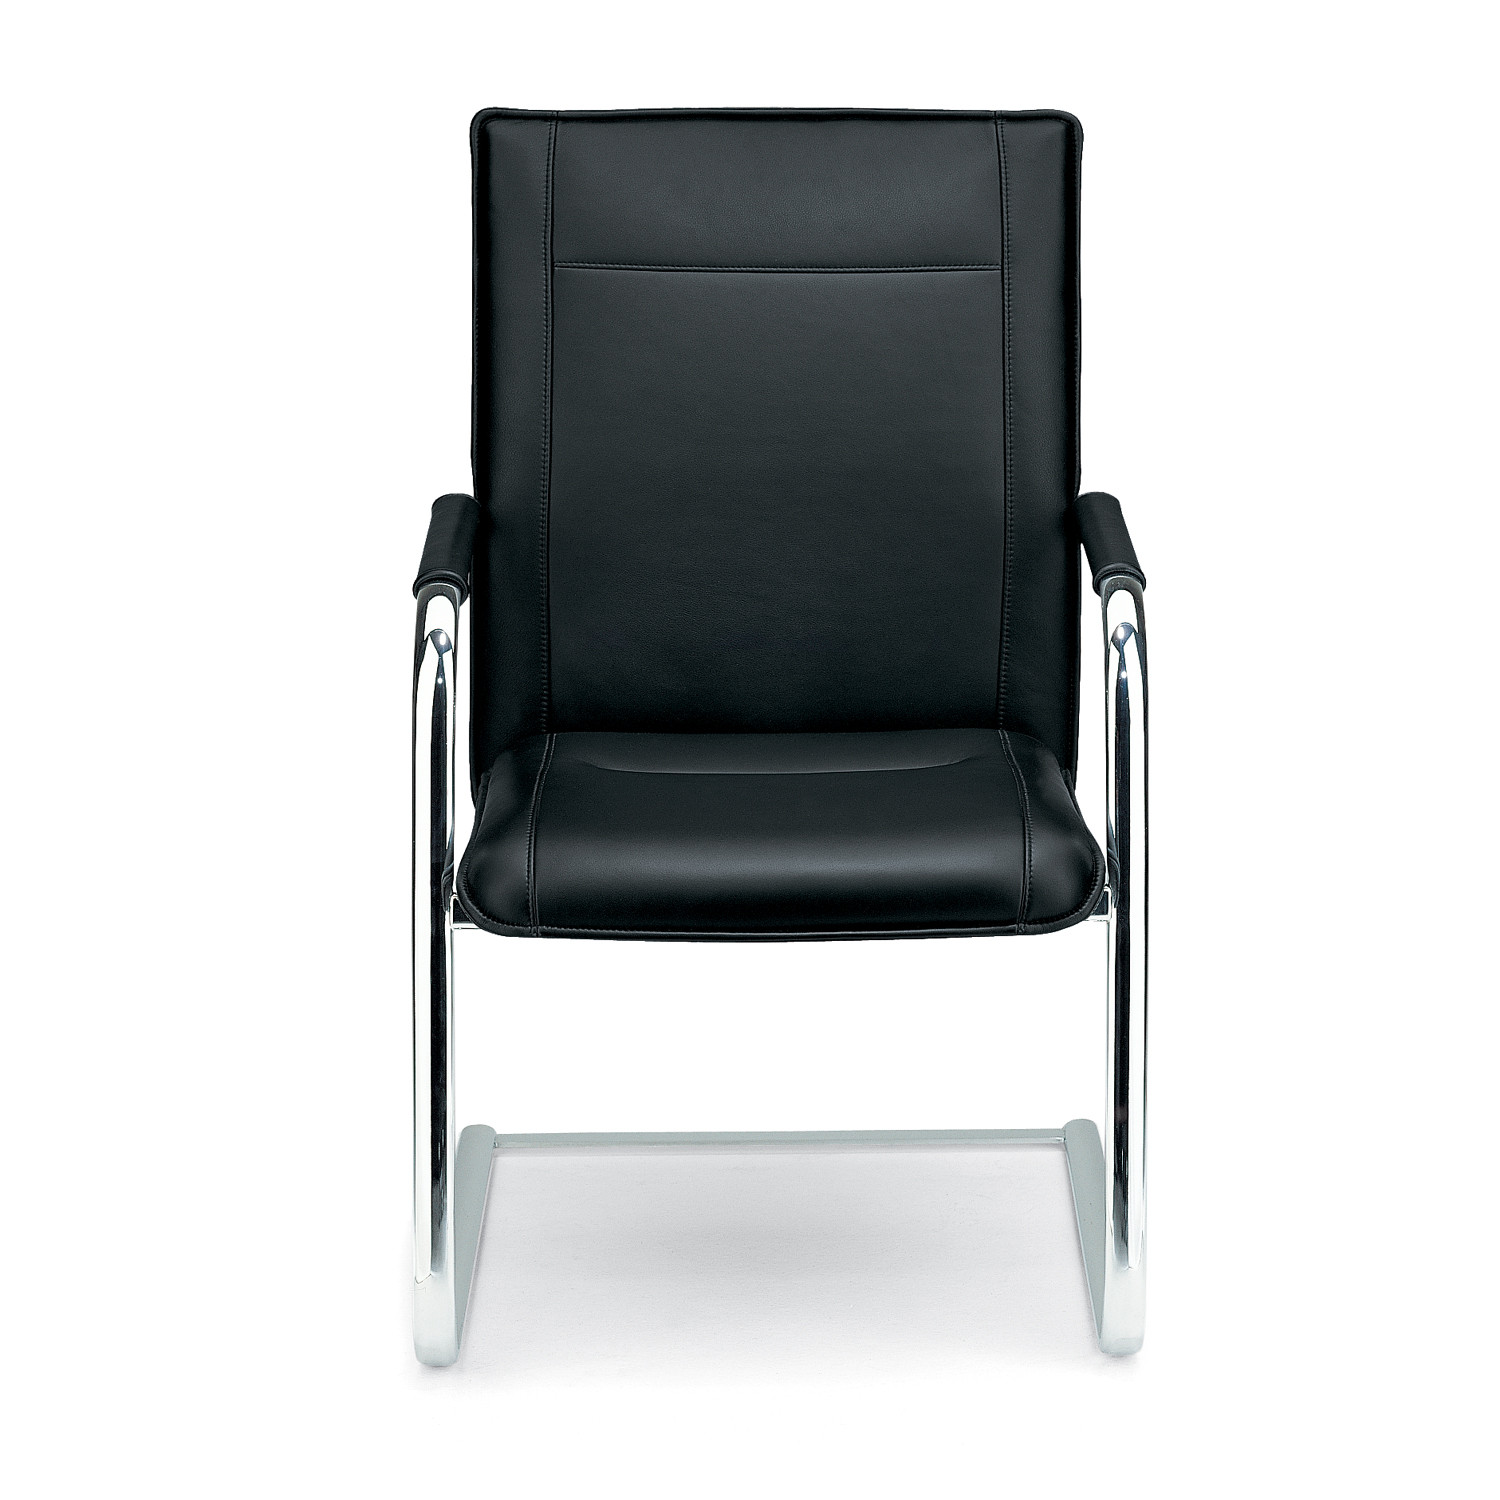 Cento Miglia Conference Chair